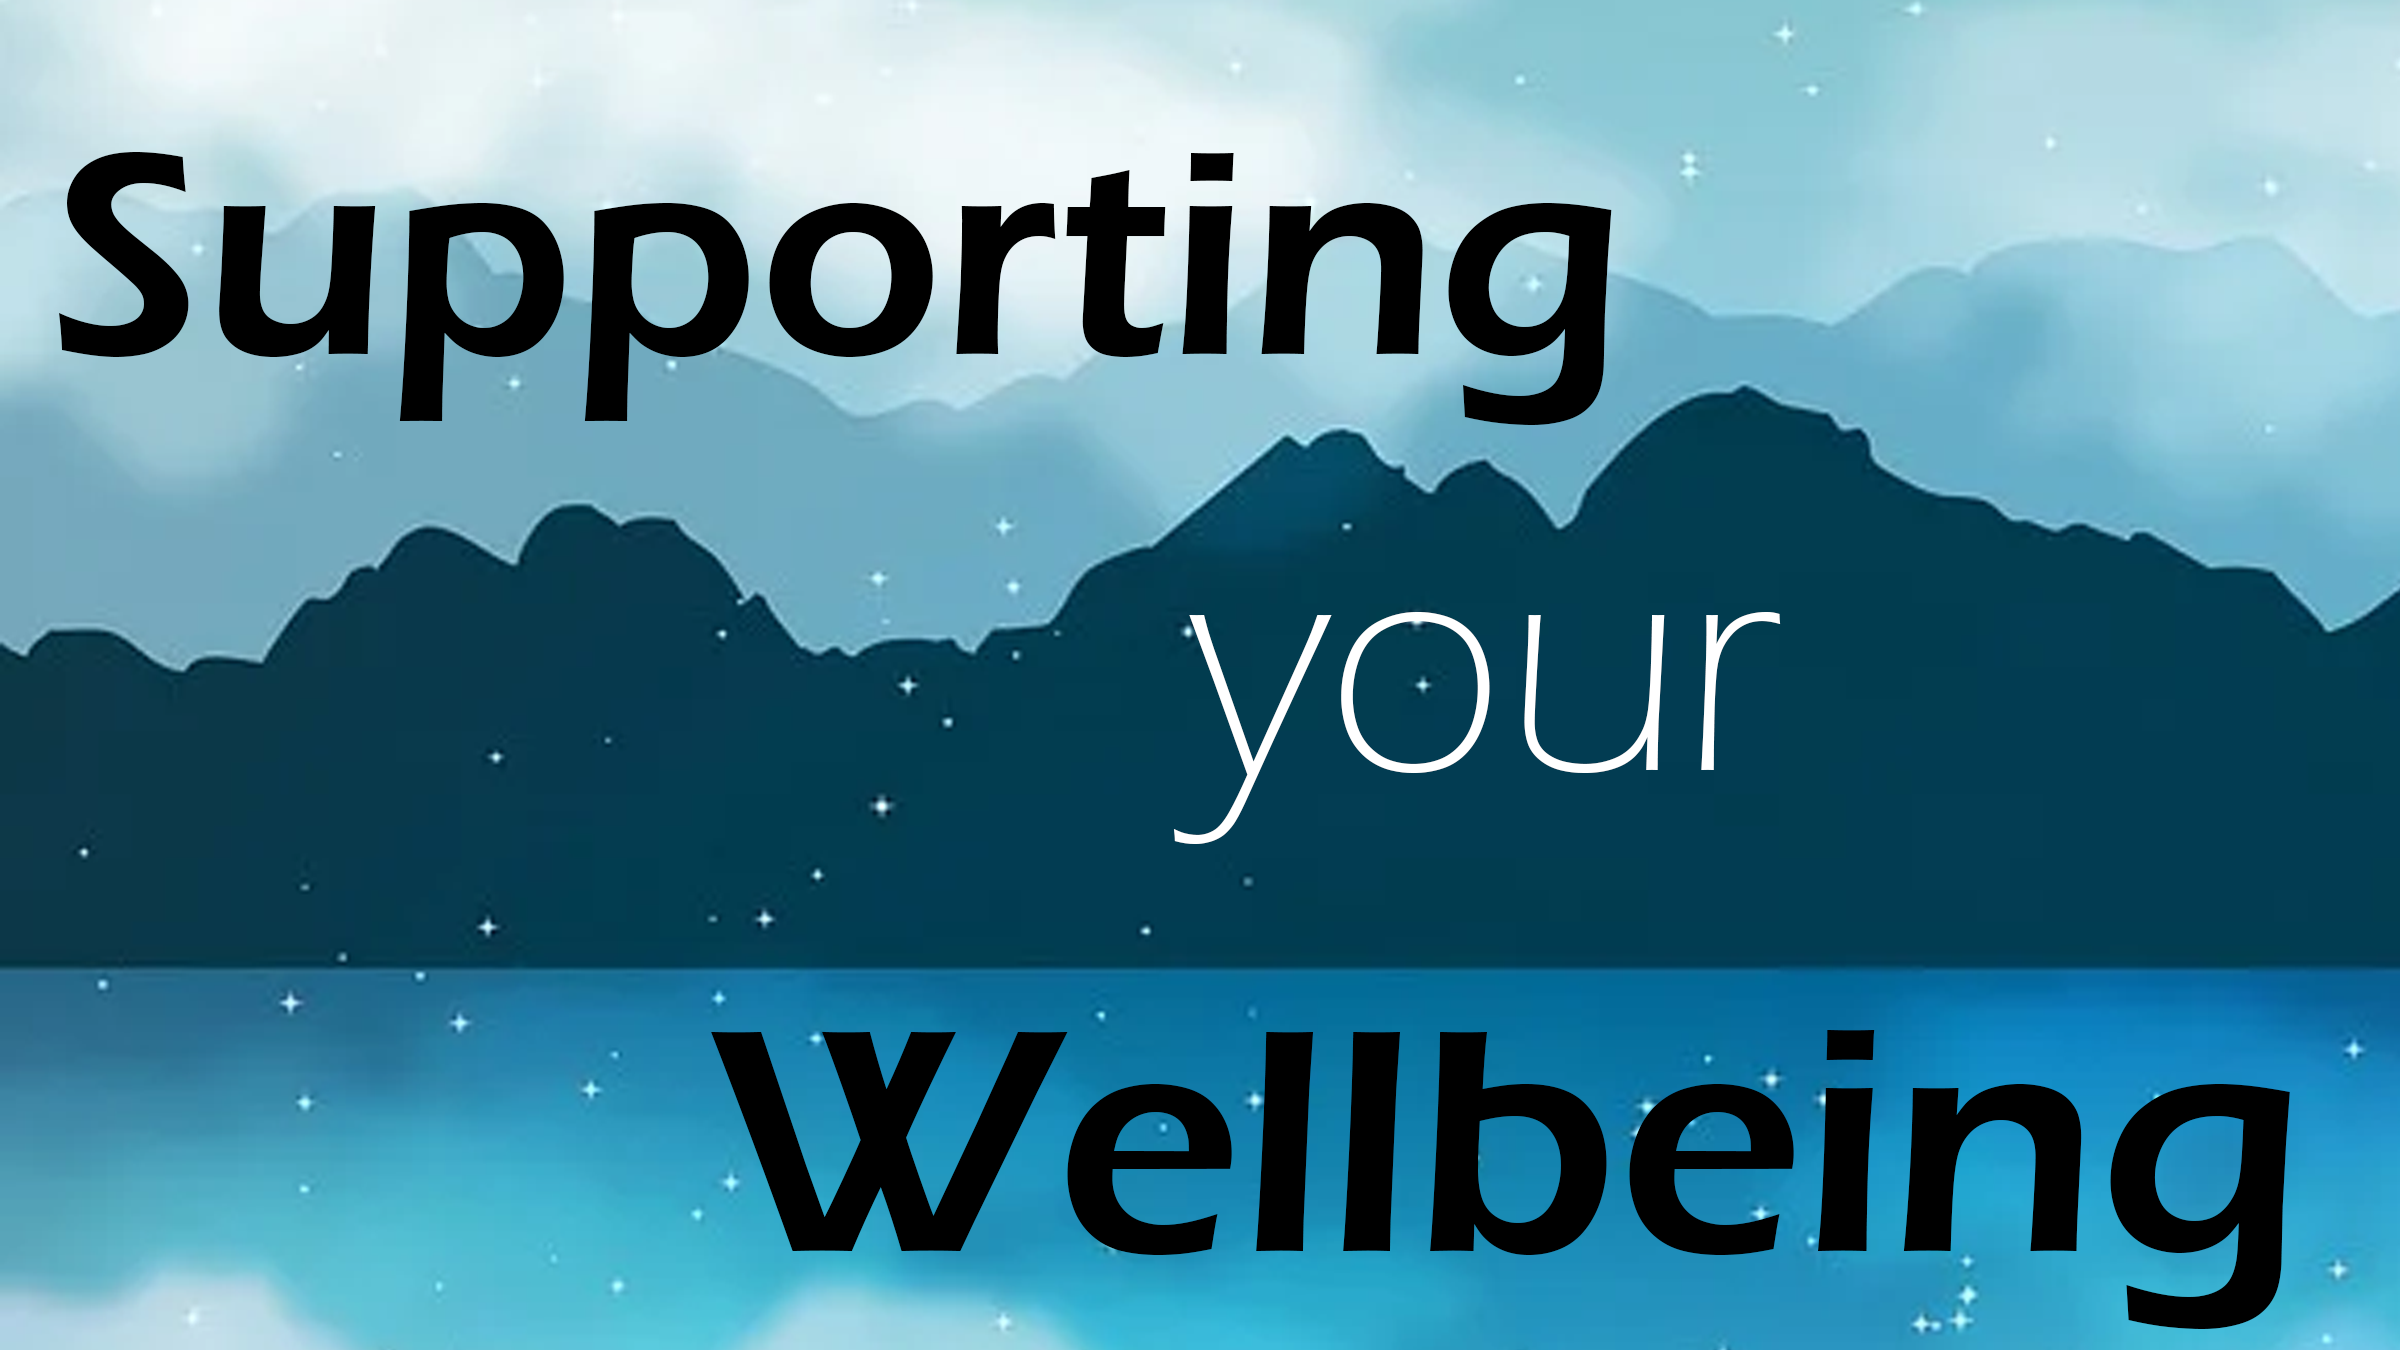 Supporting your wellbeing